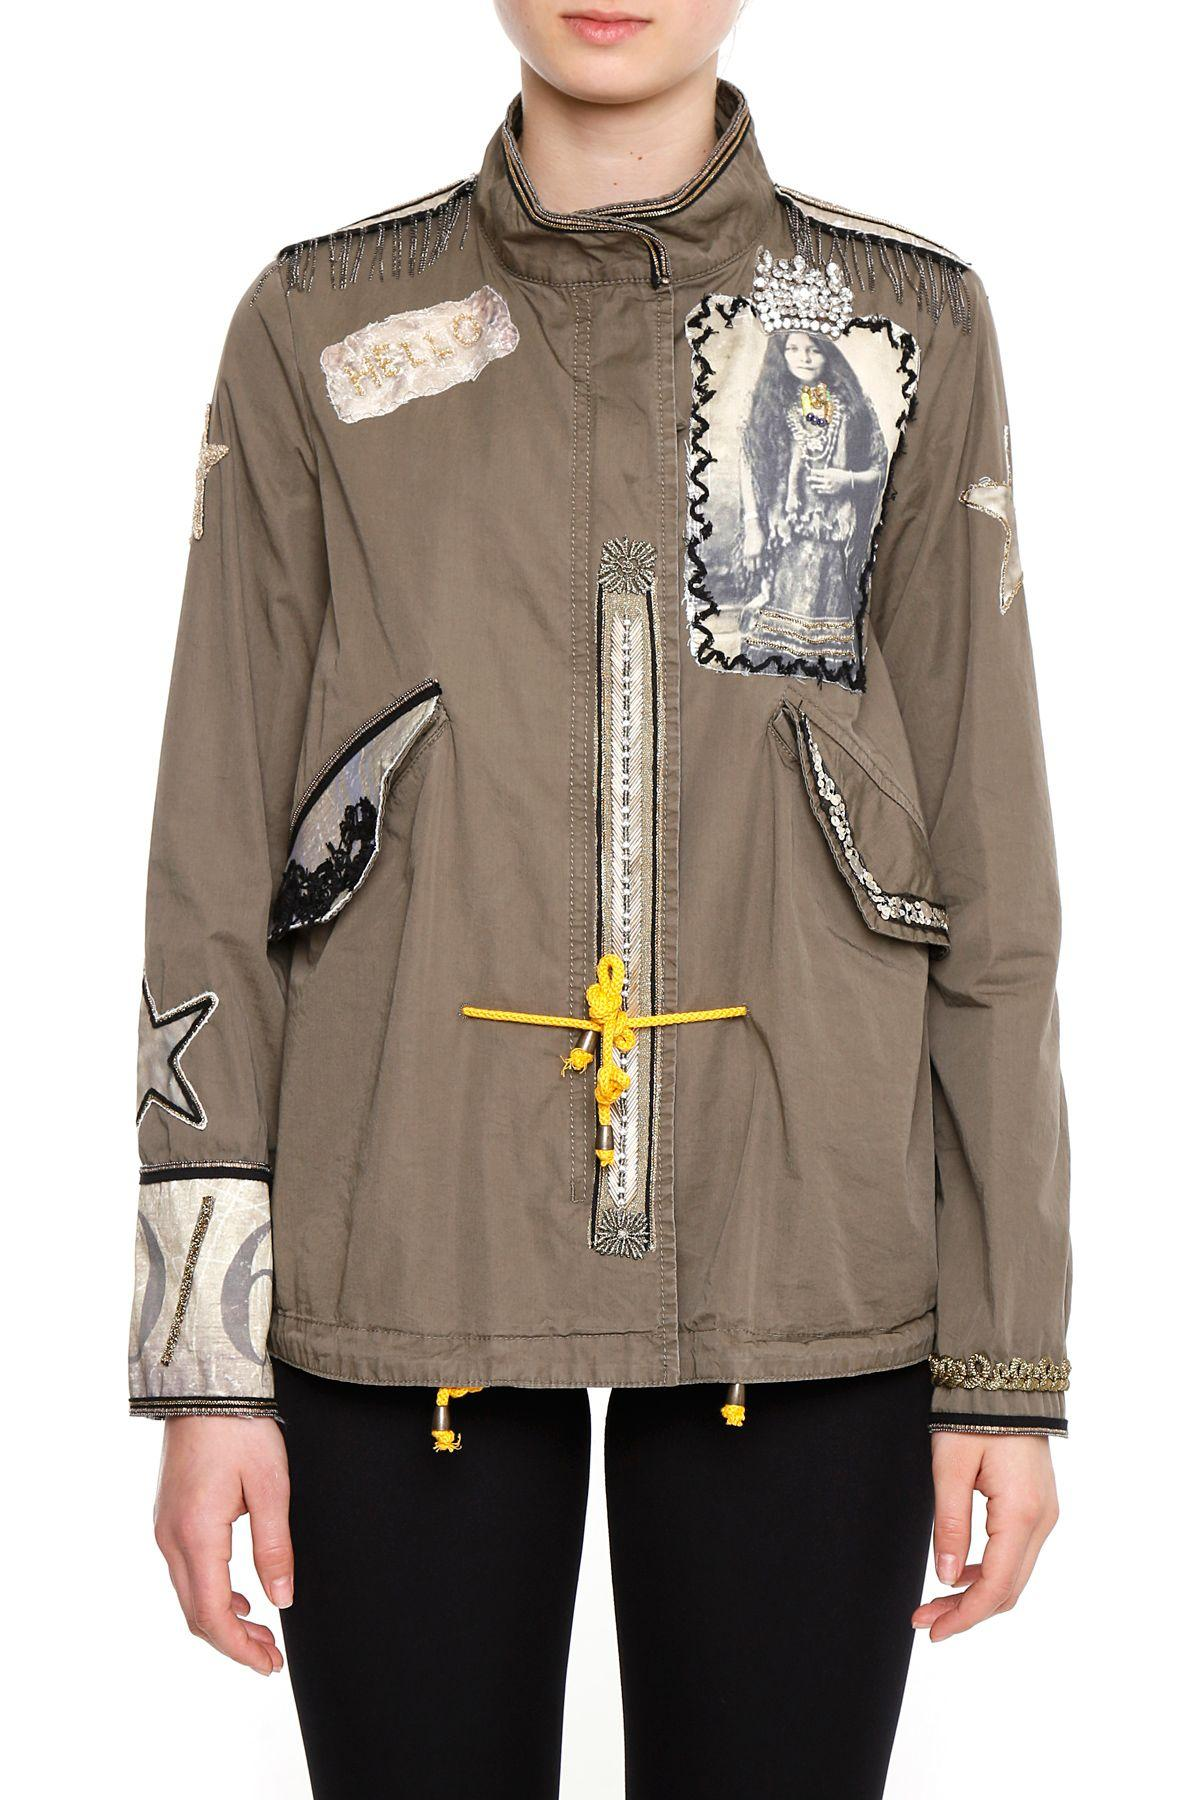 History Repeats Parka With Rhinestones And Patches In Verde Militare